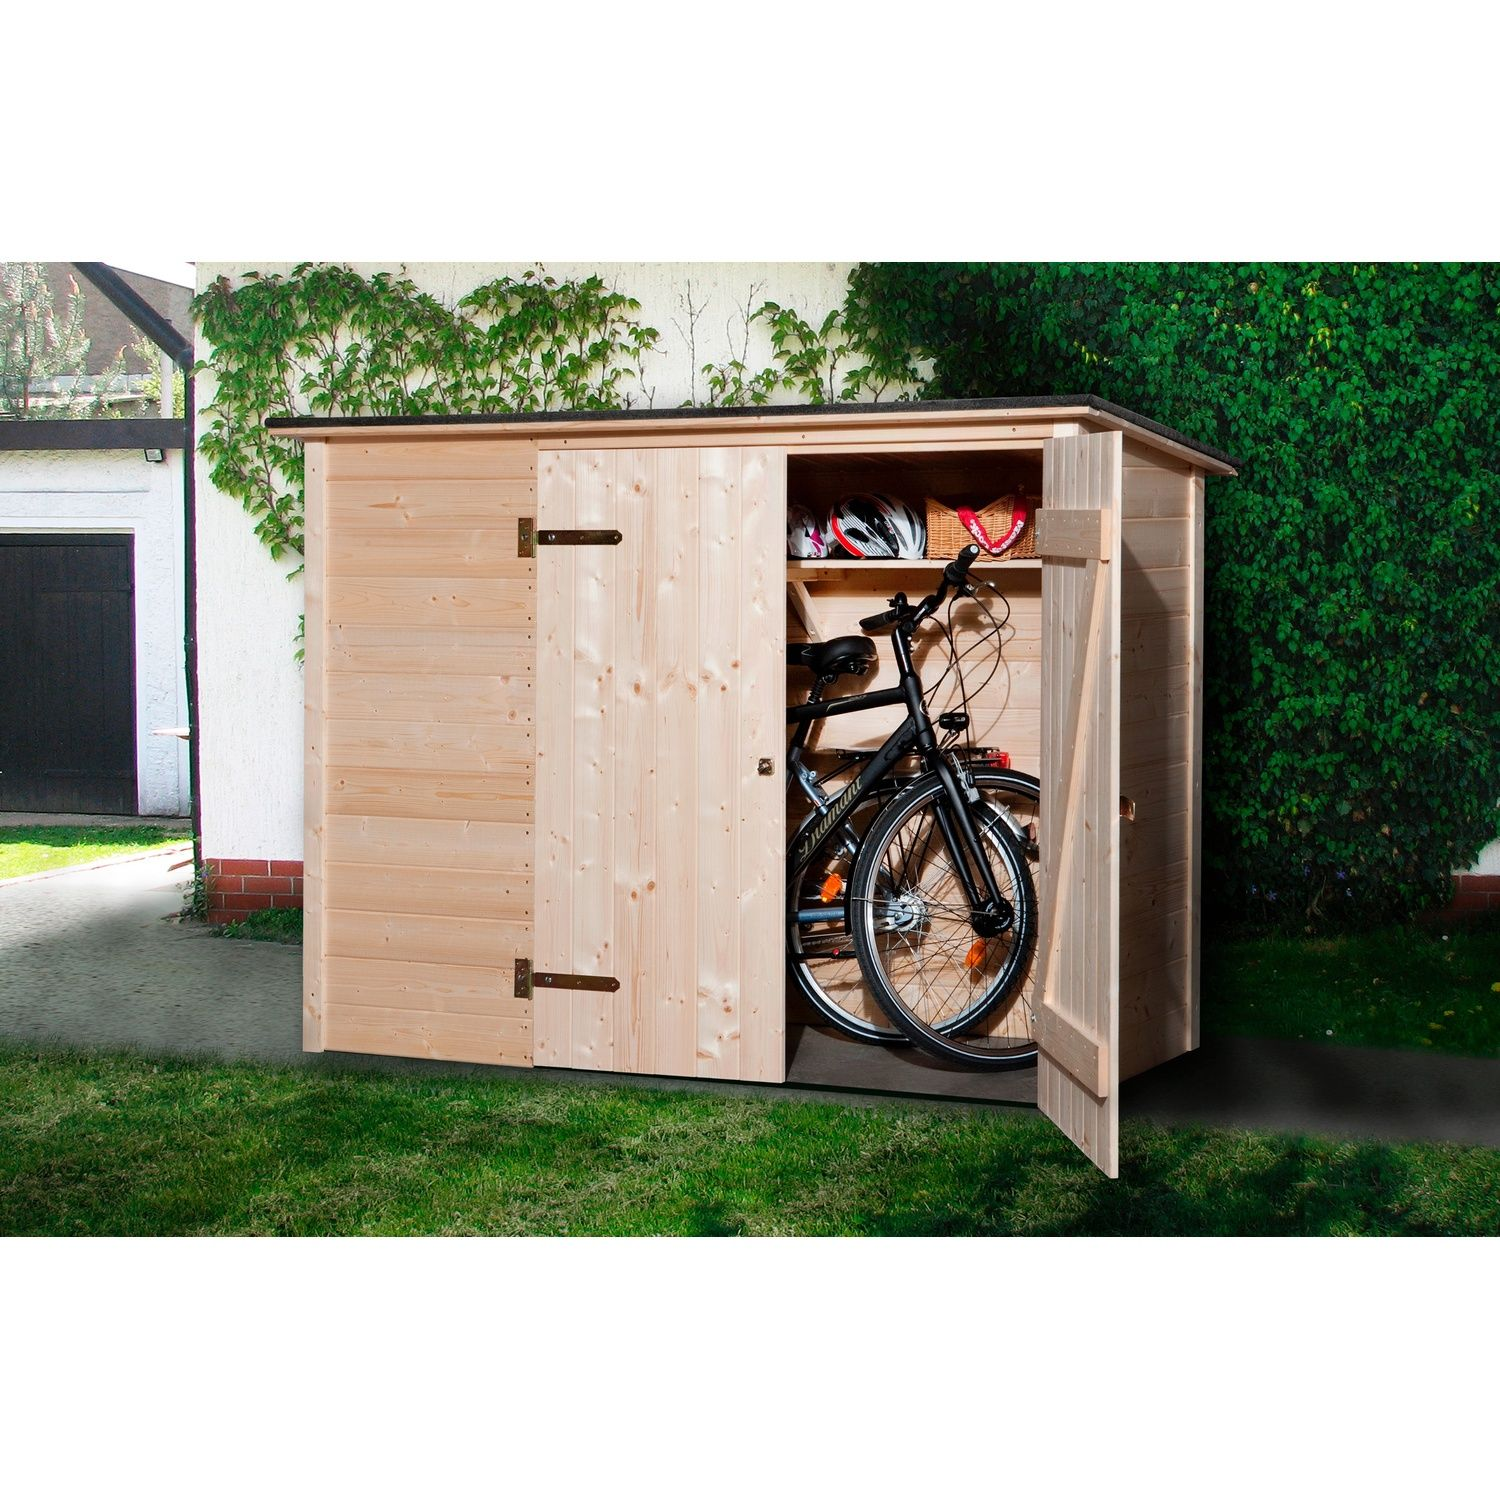 weka fahrrad box 208 cm x 84 cm fahrradgarage fahrradkeller und fahrradhaus. Black Bedroom Furniture Sets. Home Design Ideas